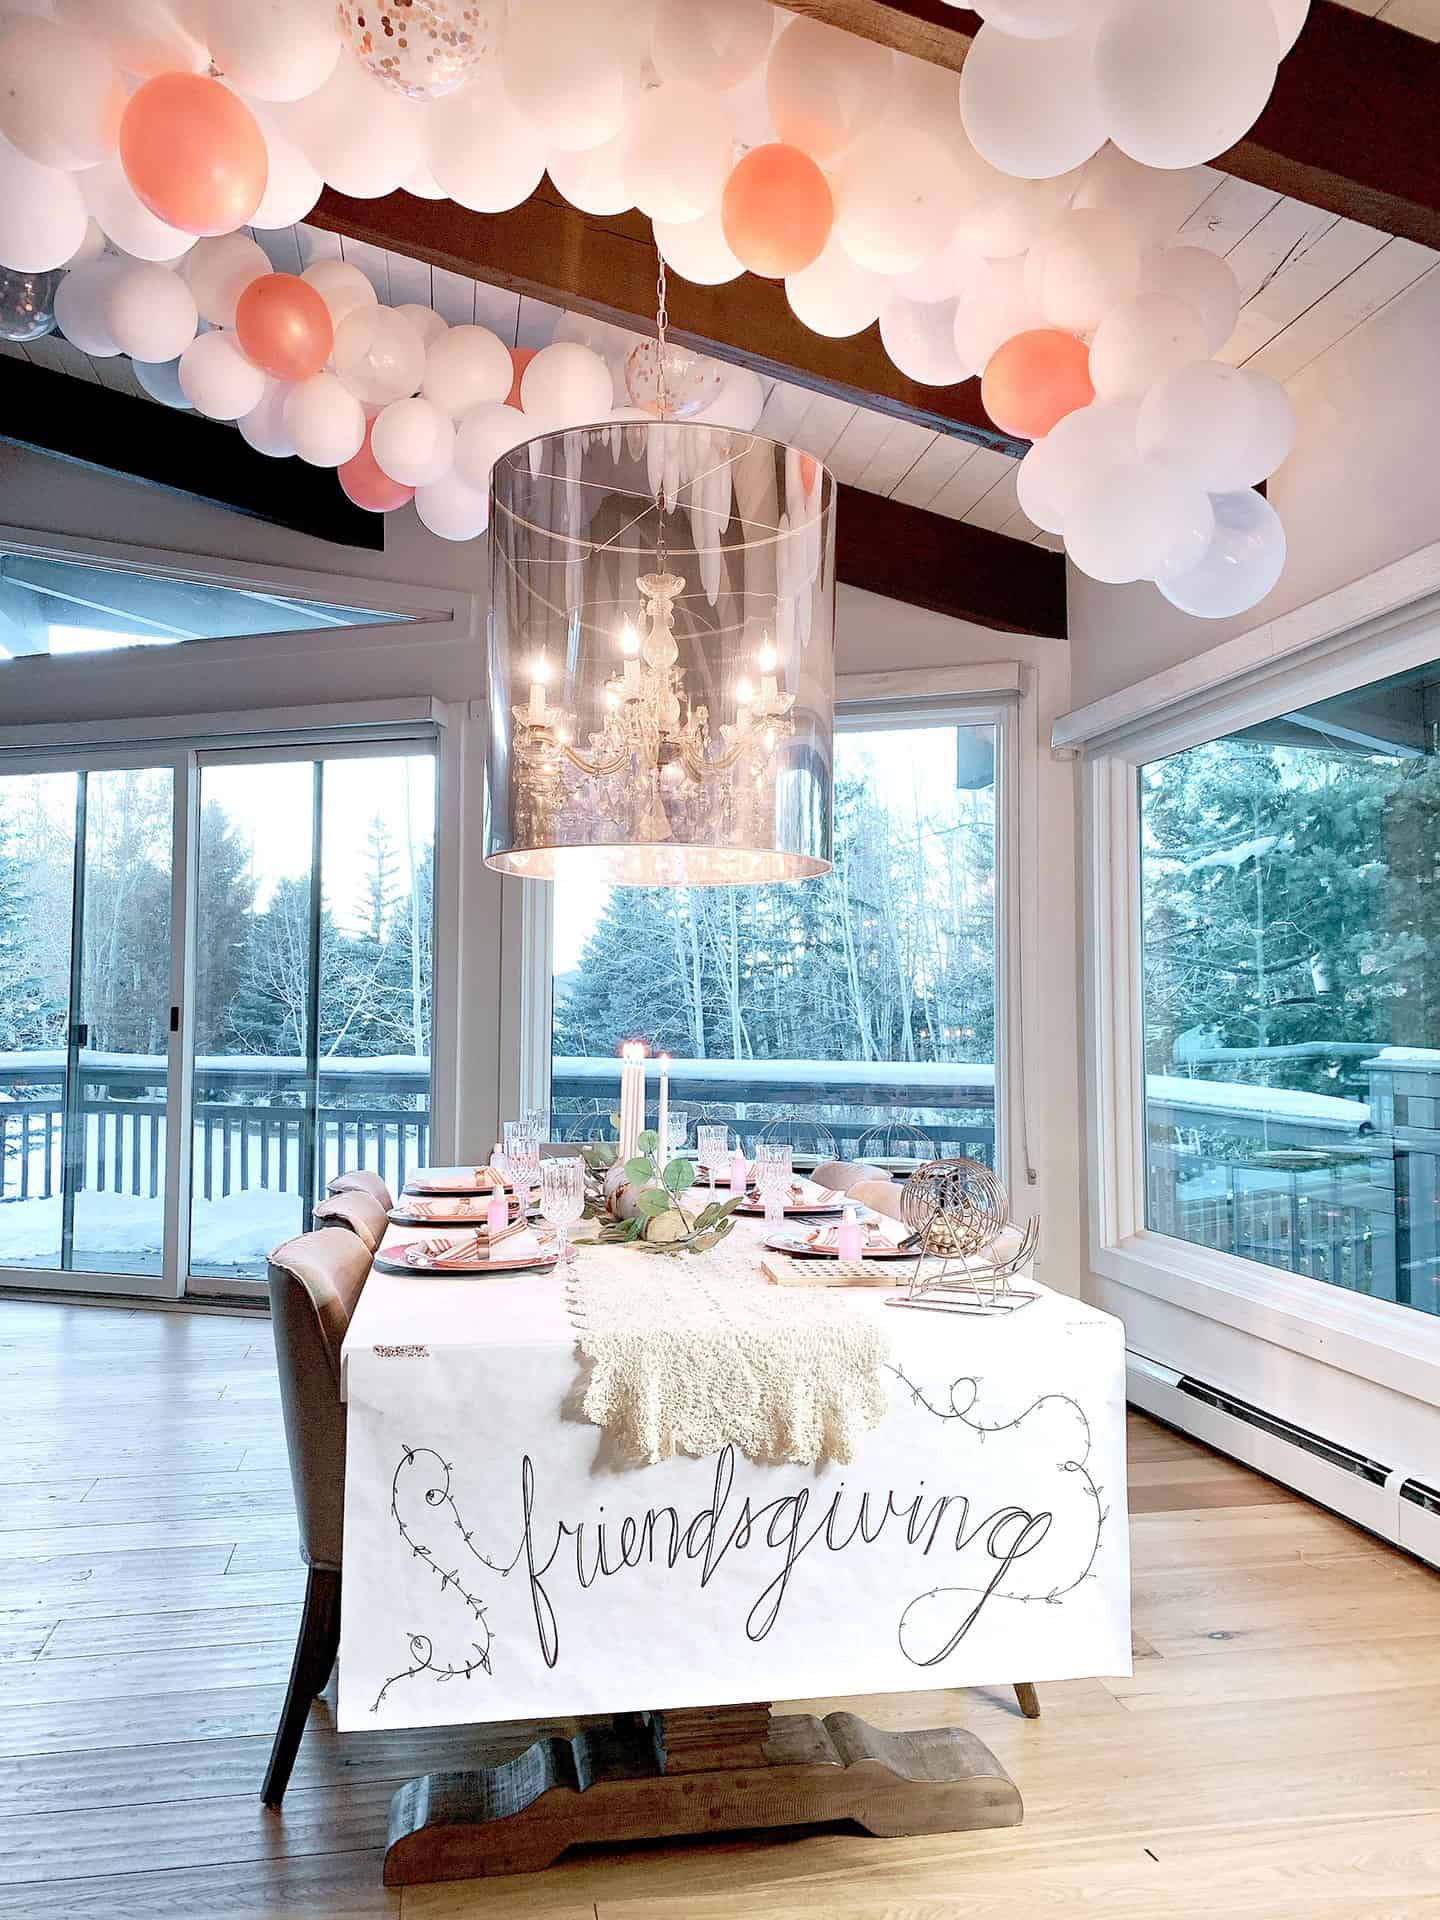 Friendsgiving DIY Tablescape